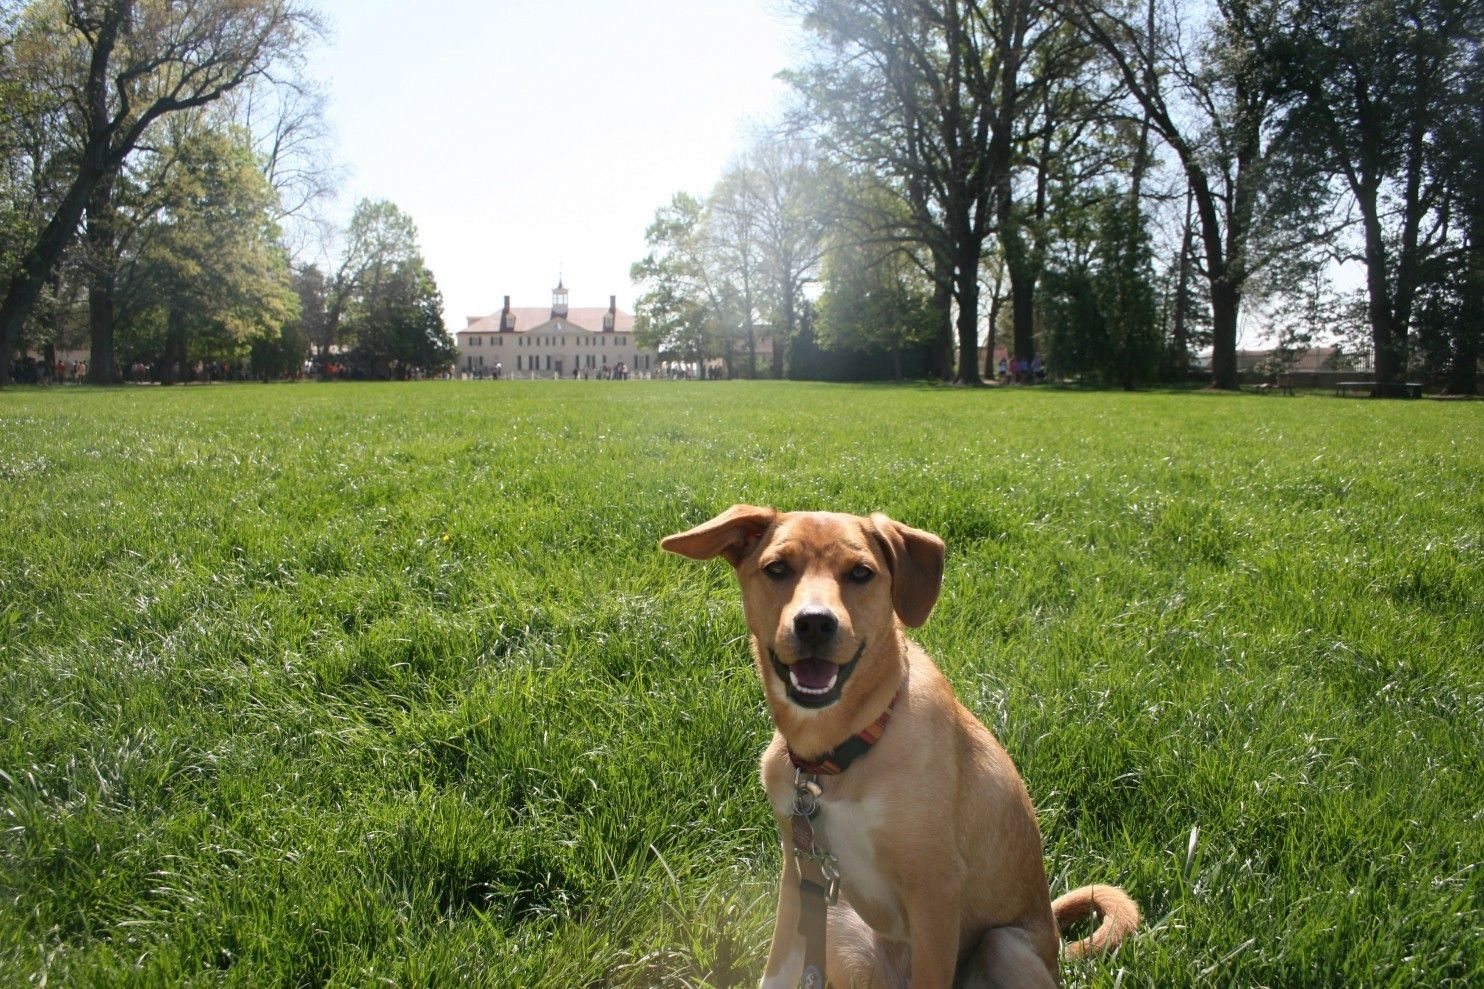 At mount vernon the pooch is dog friends pooch